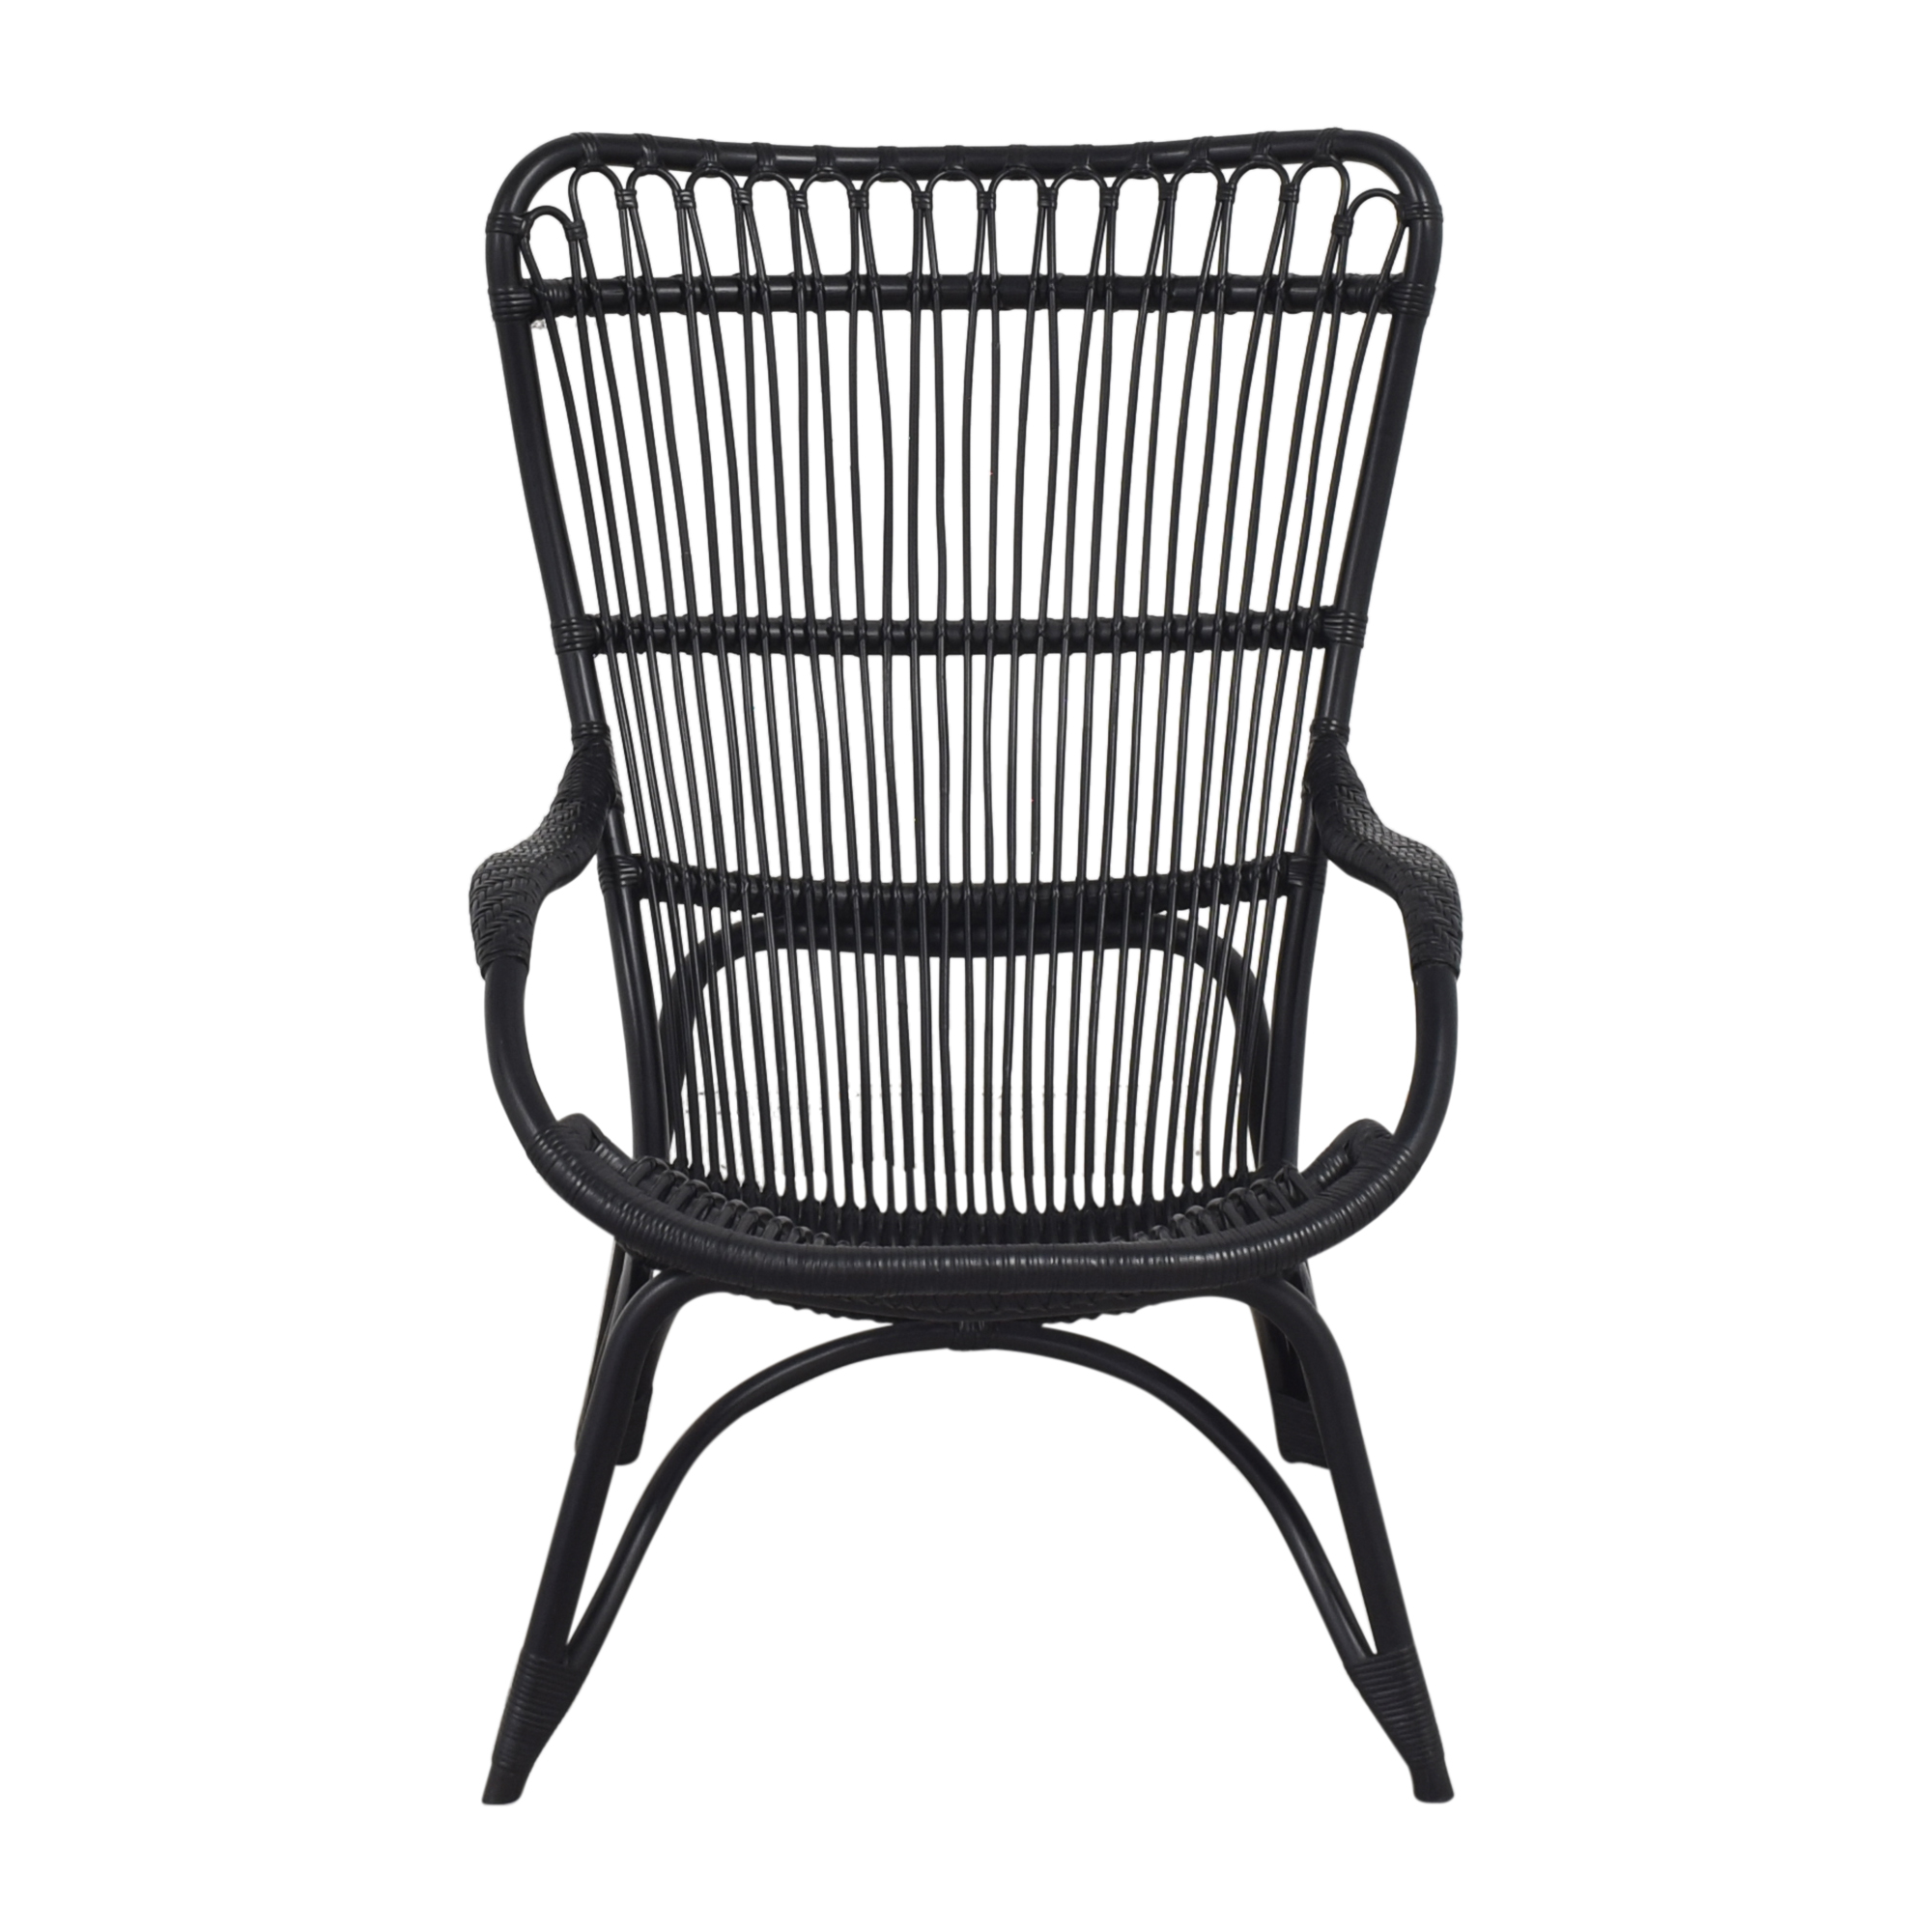 Sika Design Sika Design Monet Chair nyc